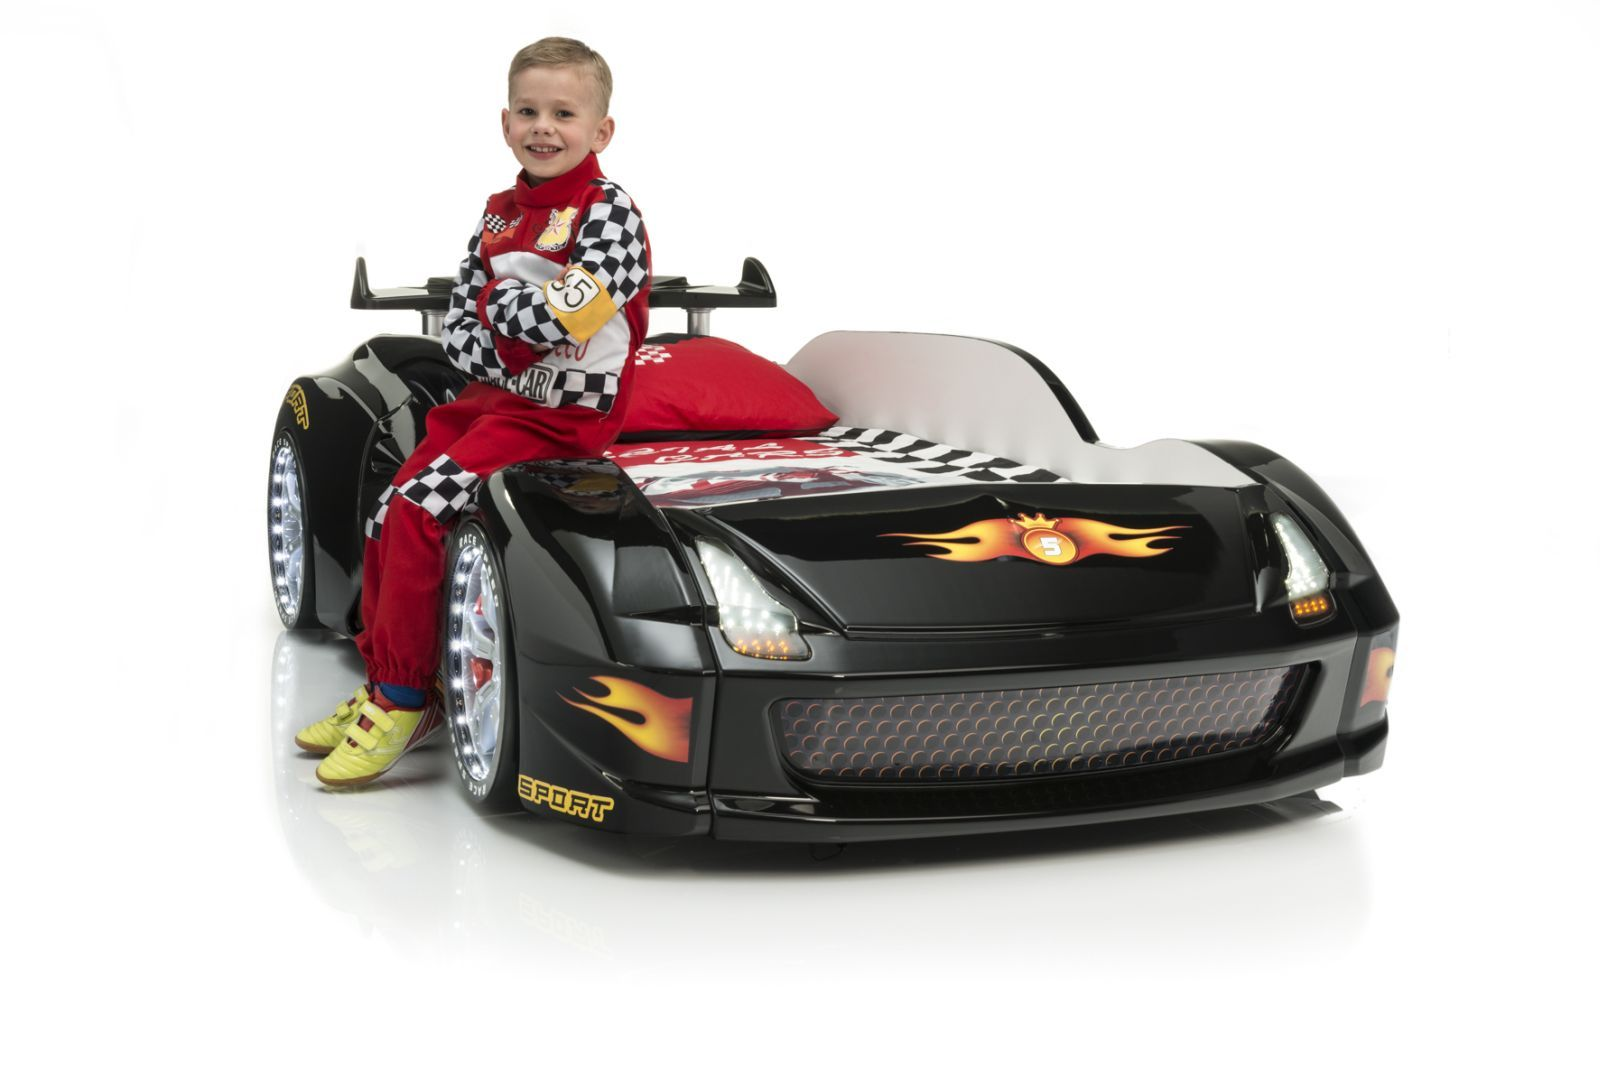 kinderbett im rennwagen look racer fivex speed in schwarz. Black Bedroom Furniture Sets. Home Design Ideas